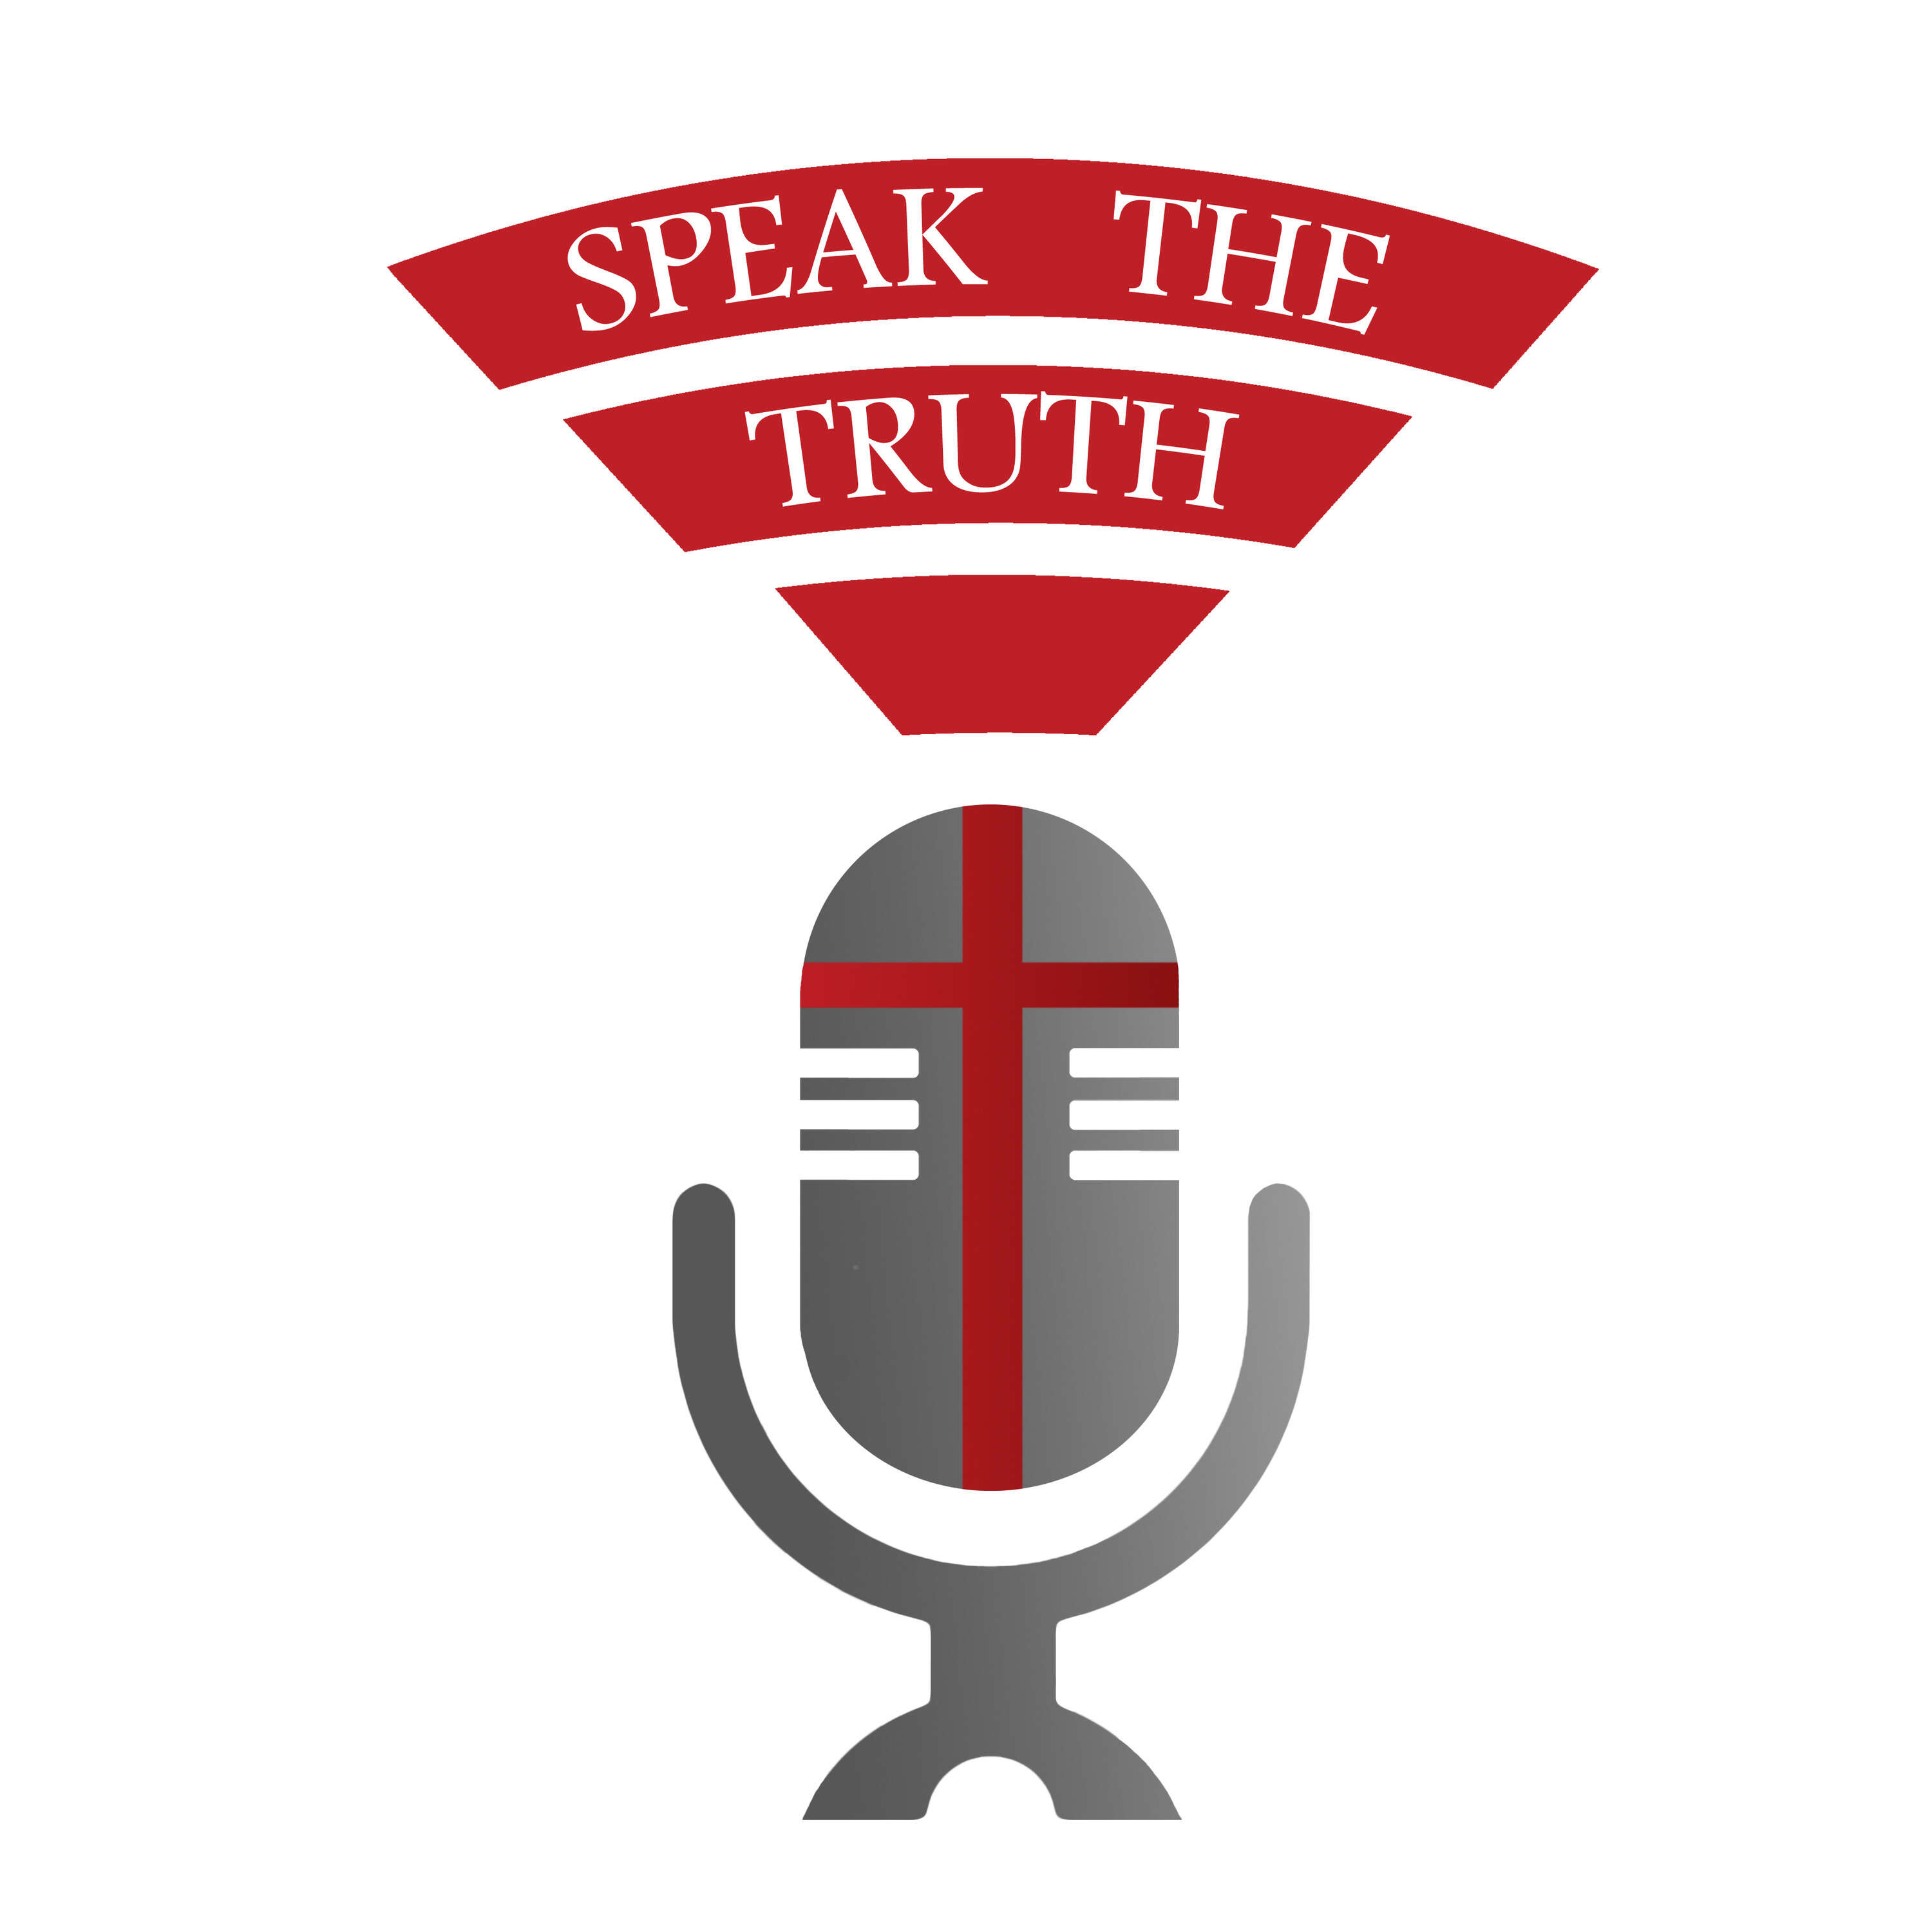 EP. 67 Systemic Racism And The Church Part 1: Deconstructing Perspectives That Produce Racism - Interview W/Pastor Trey Grant